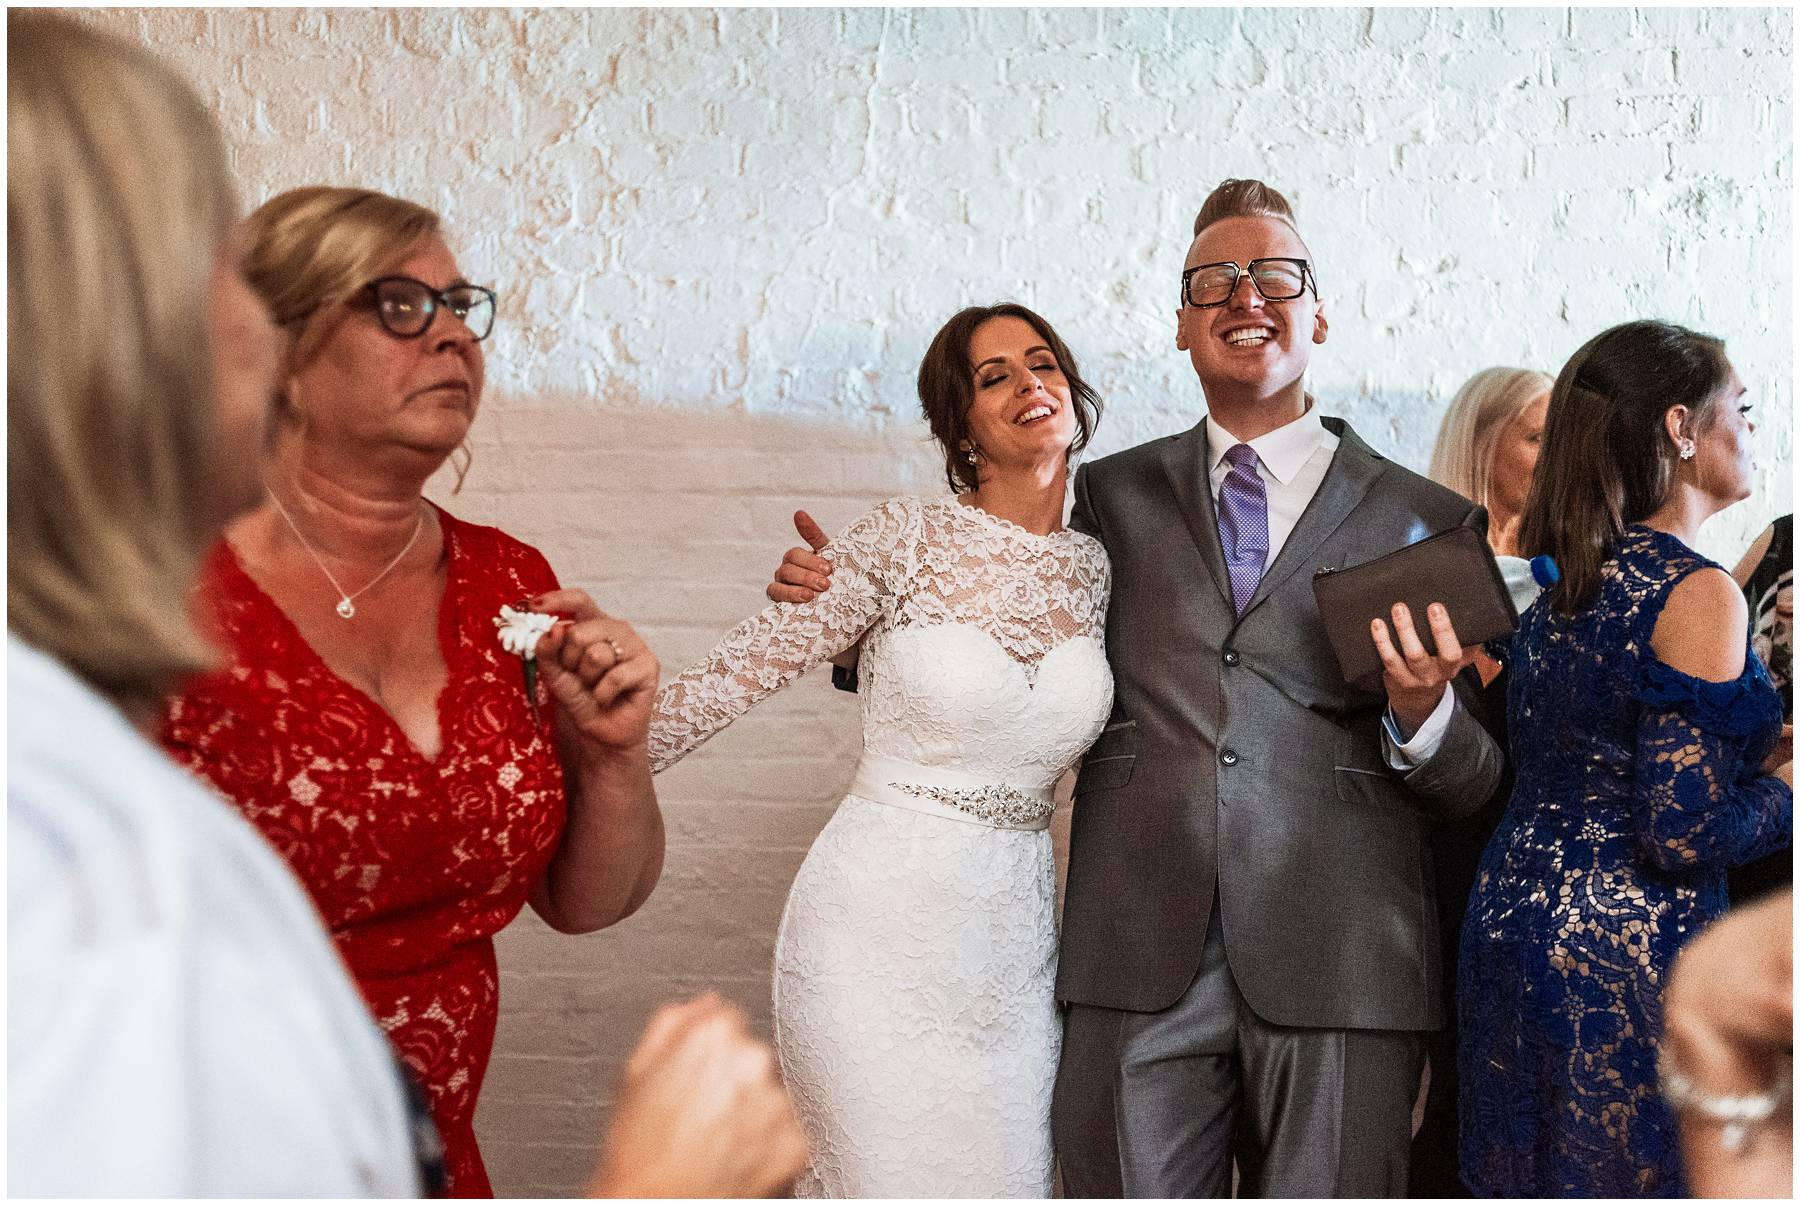 Bride and her guests dancing at The Winding House in Kent